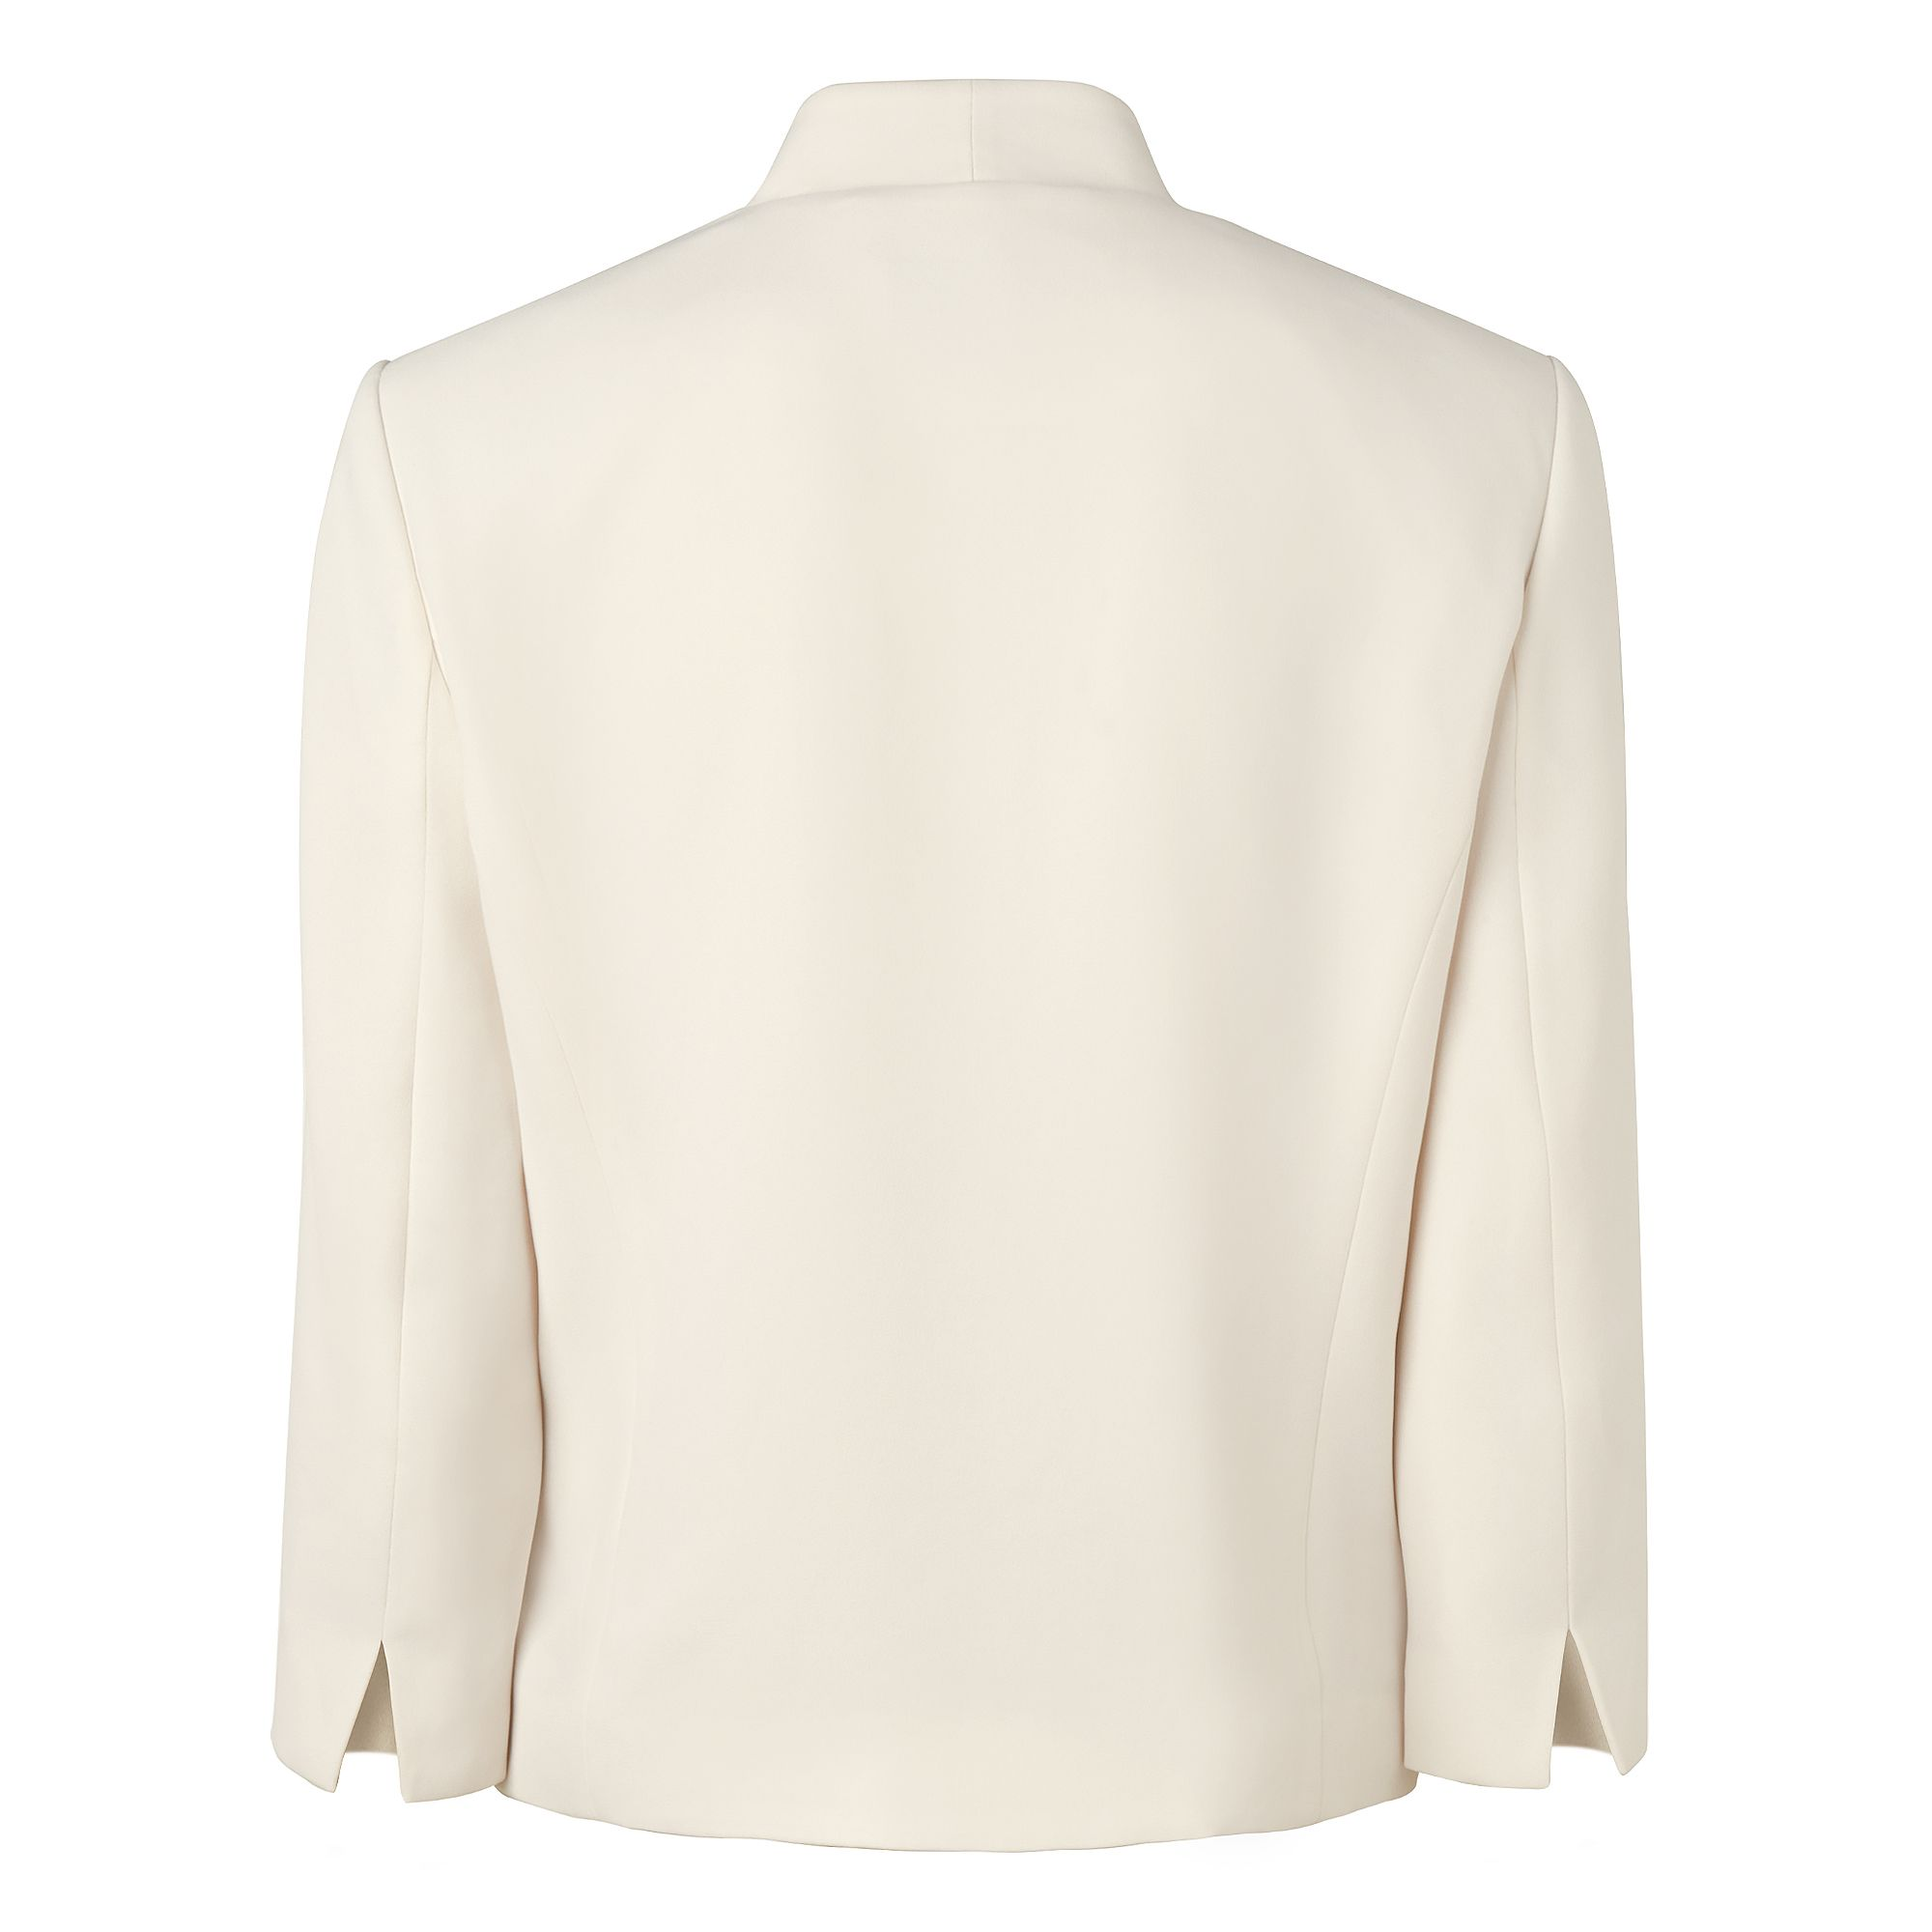 Petal Tailored Lapel Jacket